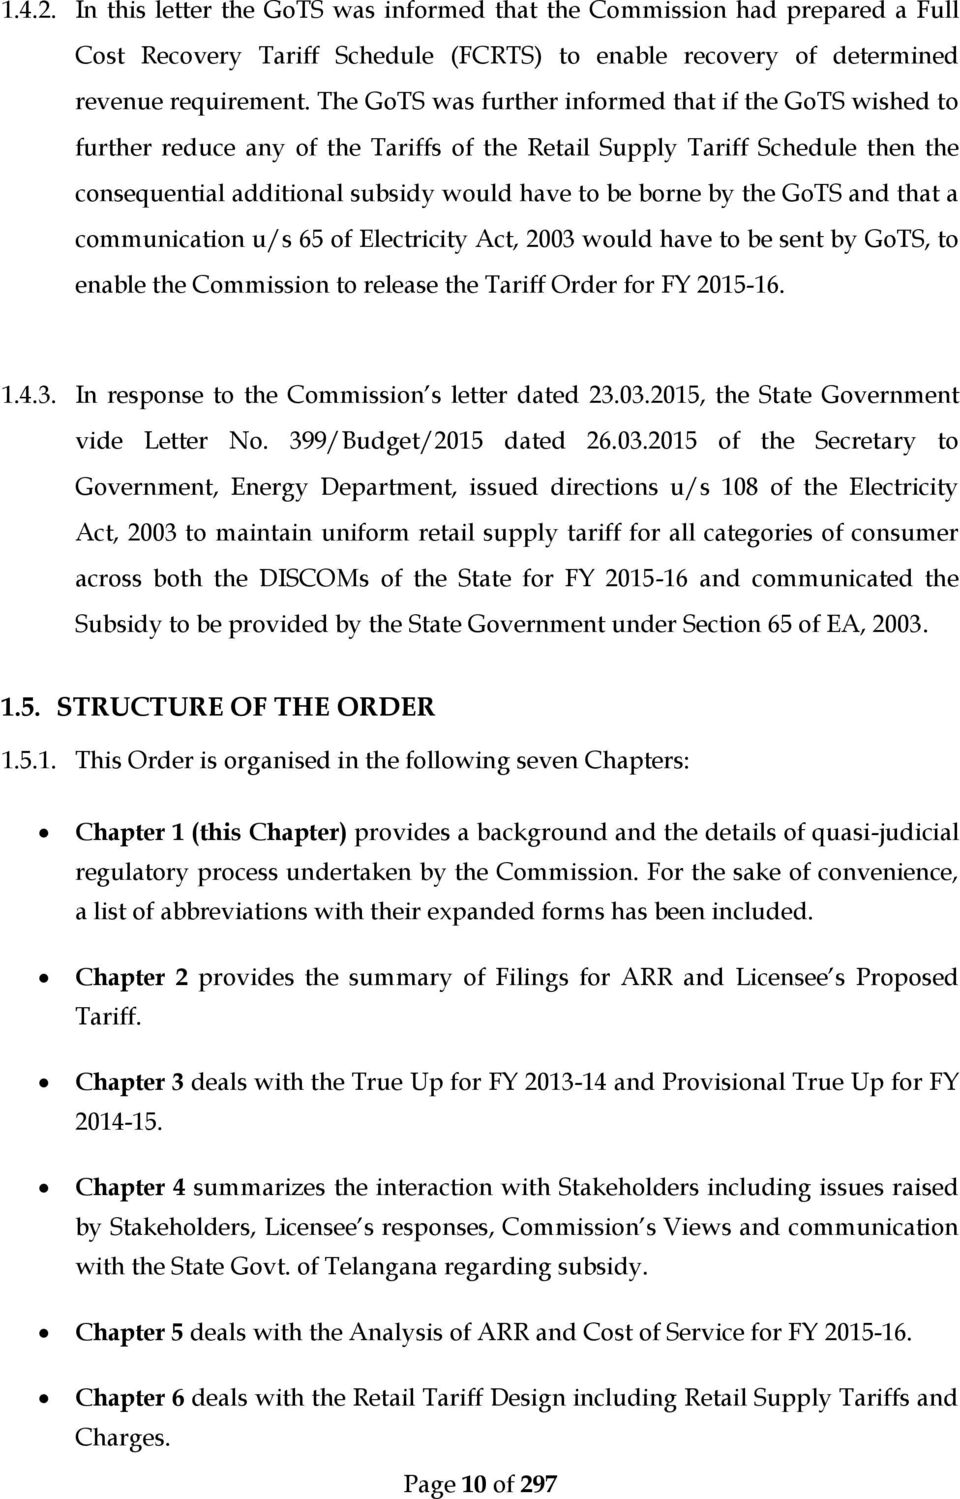 GoTS and that a communication u/s 65 of Electricity Act, 2003 would have to be sent by GoTS, to enable the Commission to release the Tariff Order for FY 2015-16. 1.4.3. In response to the Commission s letter dated 23.